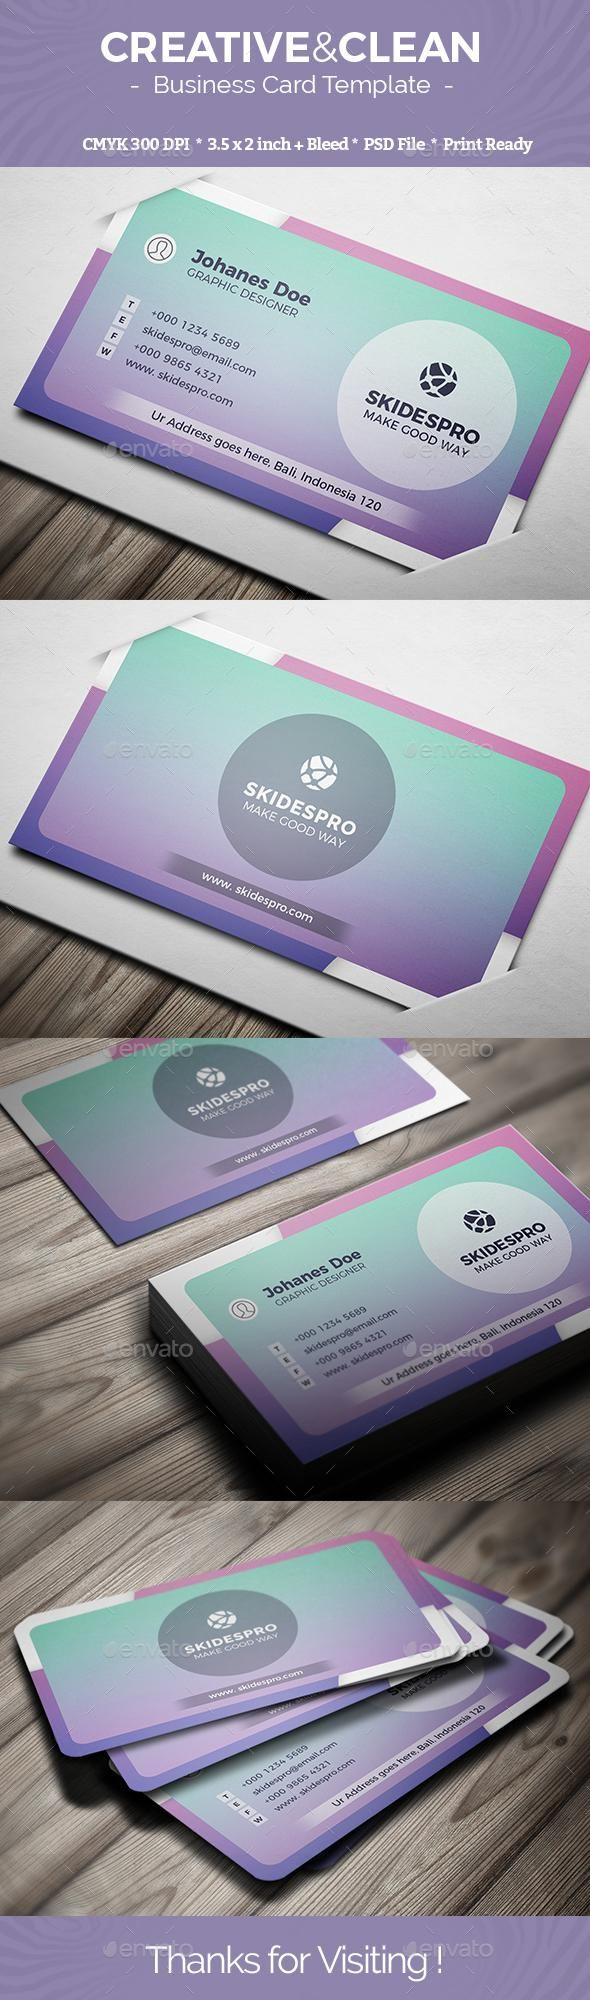 Creative Clean For 5 Graphicriver Bestdesignresources Cartes